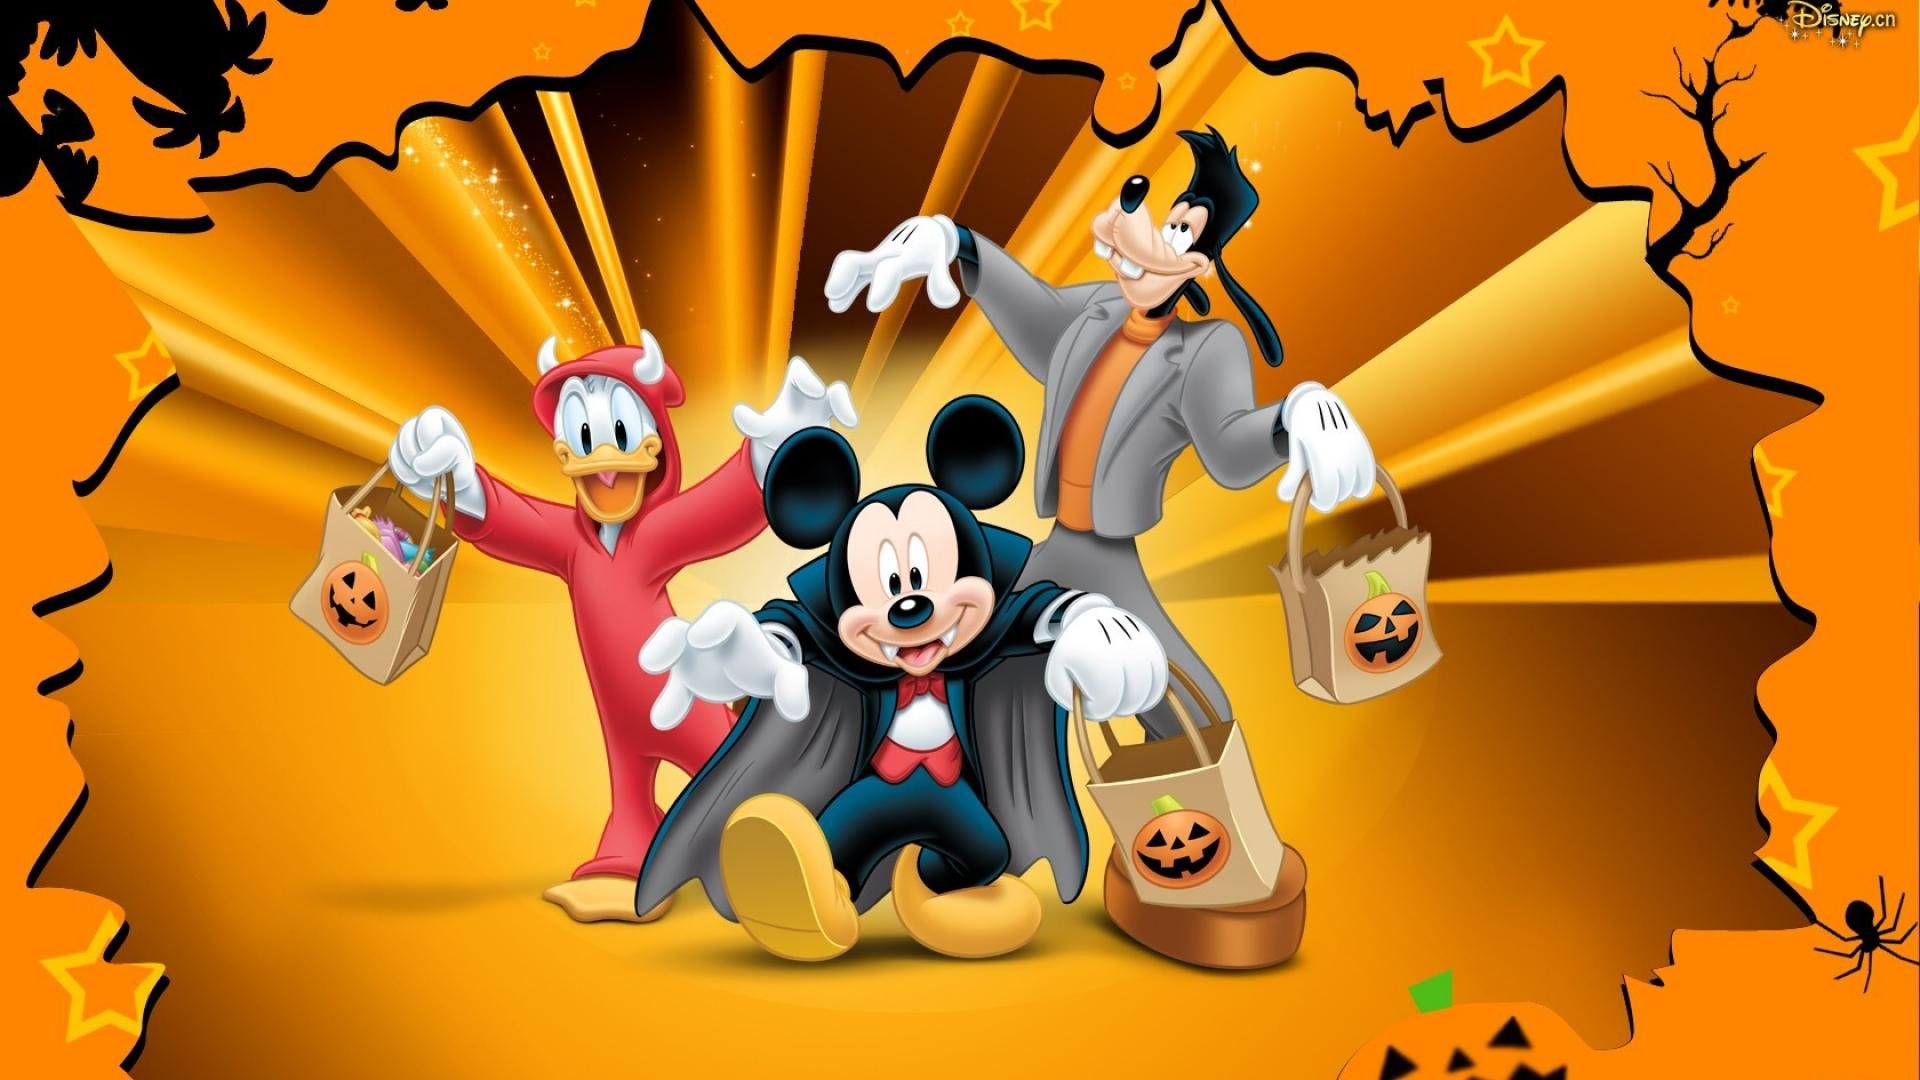 Halloween goofy walt disney mickey mouse donald duck wallpaper 1920x1080